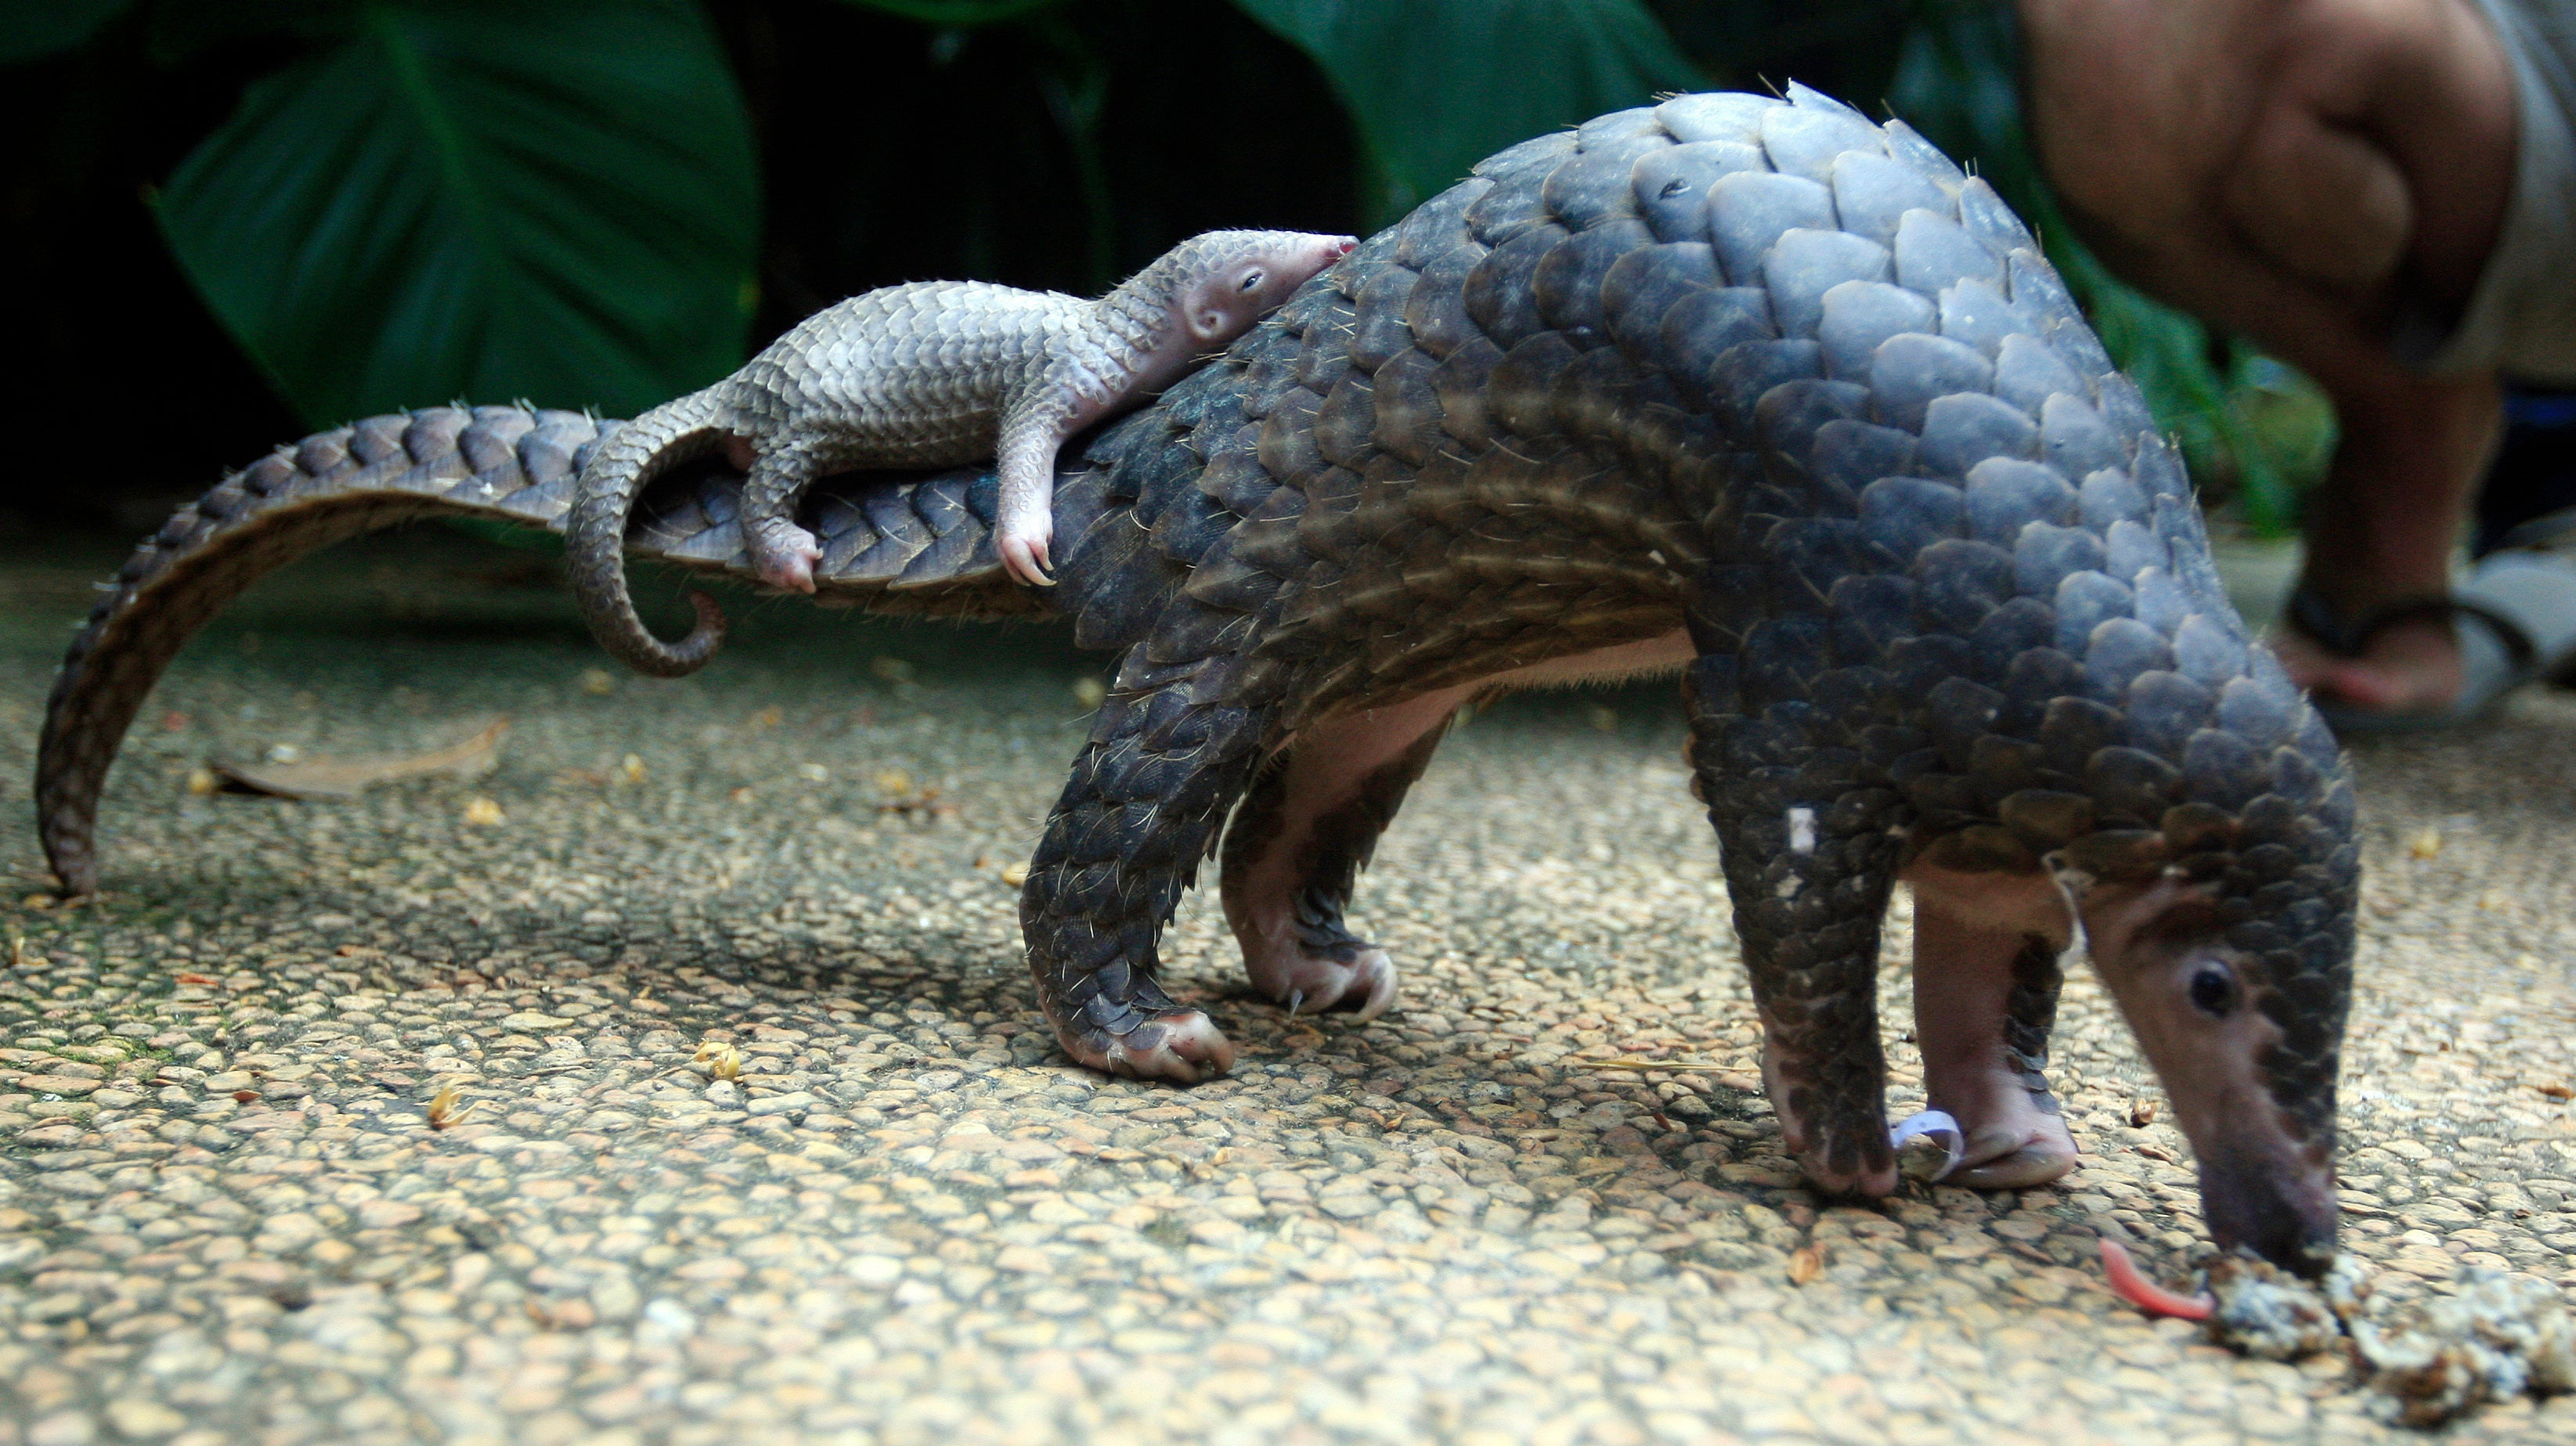 Singapore Officials Set Horrifying Record, Busting 14-Ton Shipment Of Smuggled Pangolin Scales